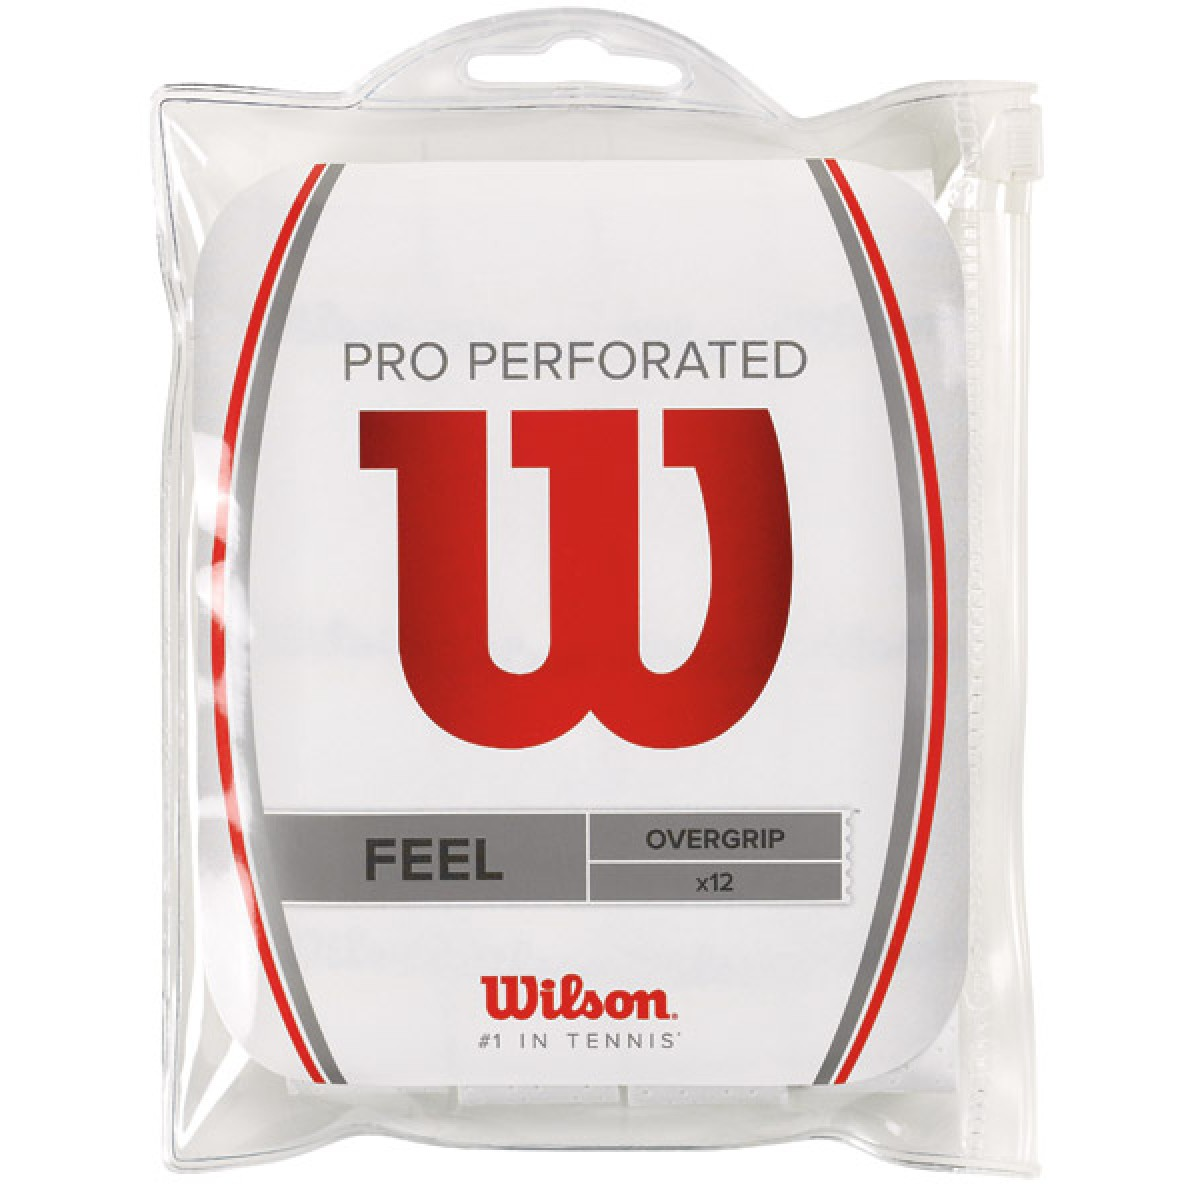 12 SURGRIPS WILSON PRO OVERGRIP PERFORATED